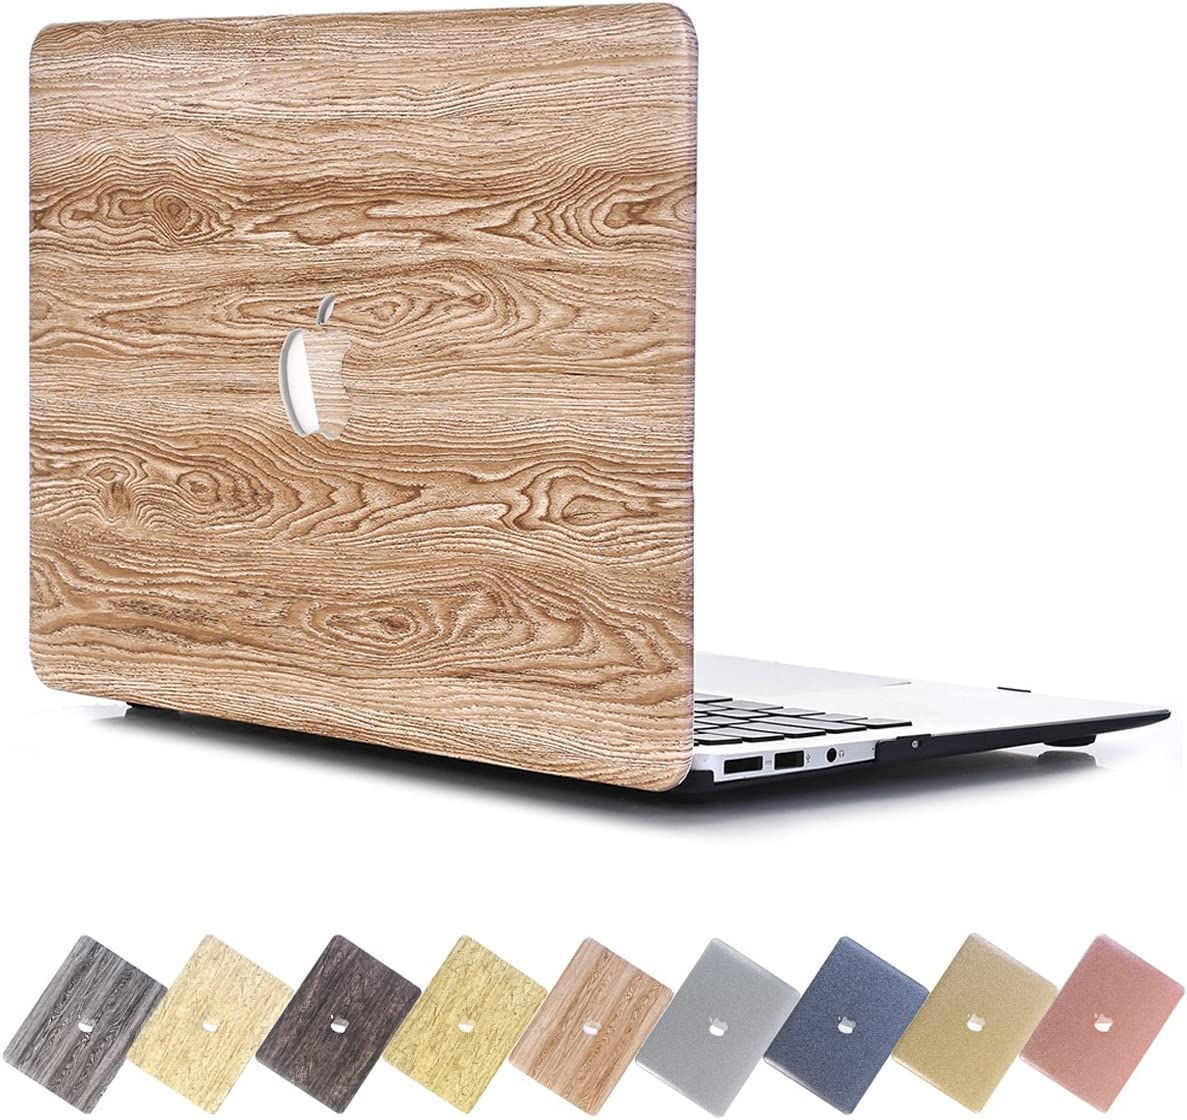 PapyHall MacBook Air 11 inch Case, Creative Wood Grain Macbook [Full Body Protective] Plastic Hard Case for Apple Macbook Air 11 inch Model : A1370/A1465 - Sallow